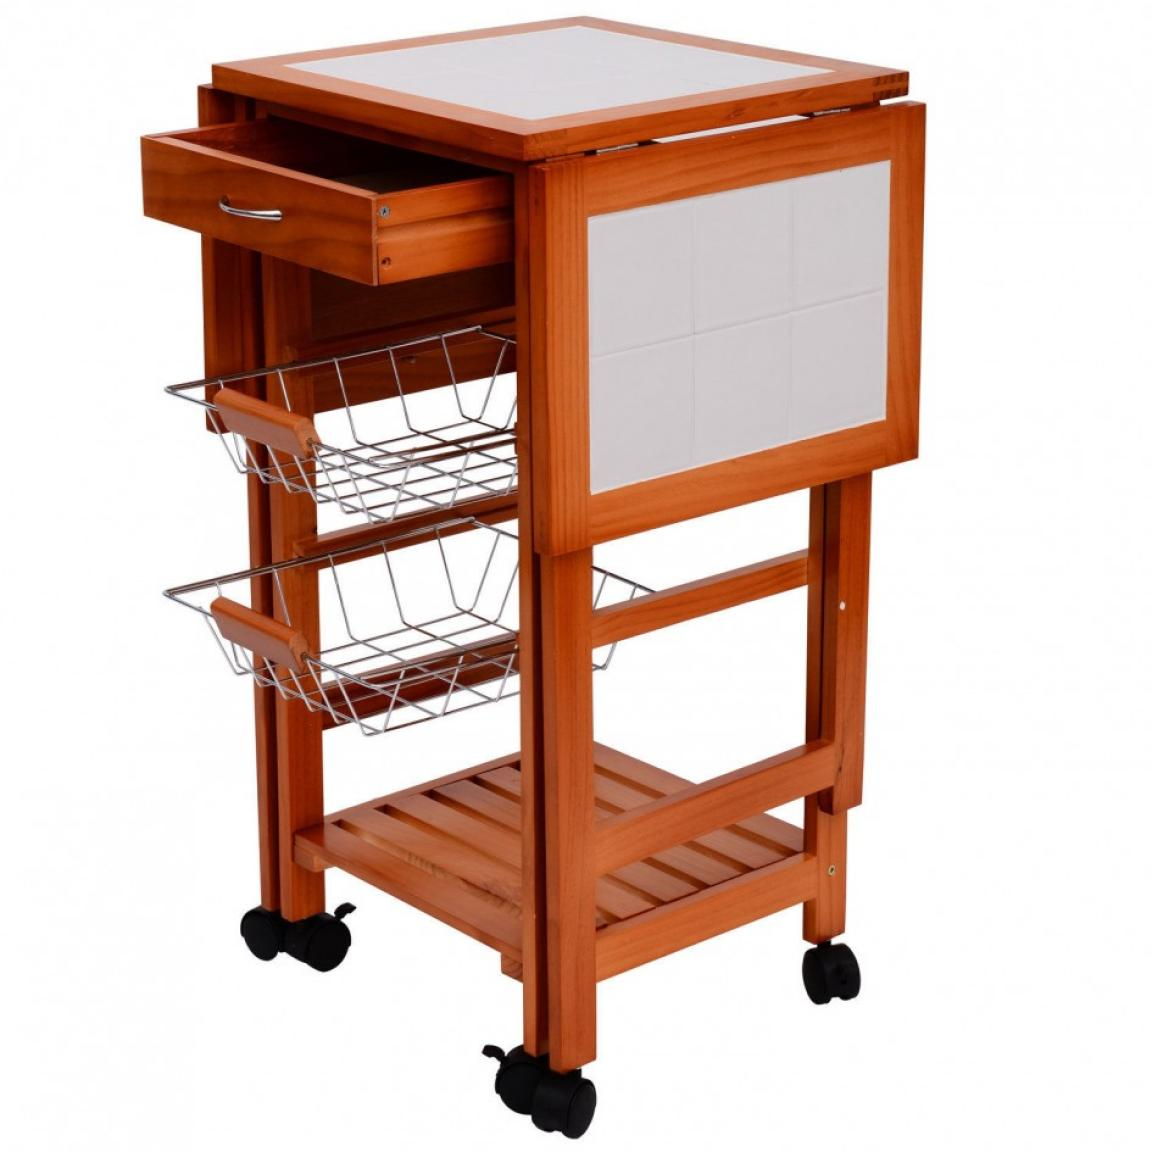 small-kitchen-island-cart-with-drawers – Home Inspiring